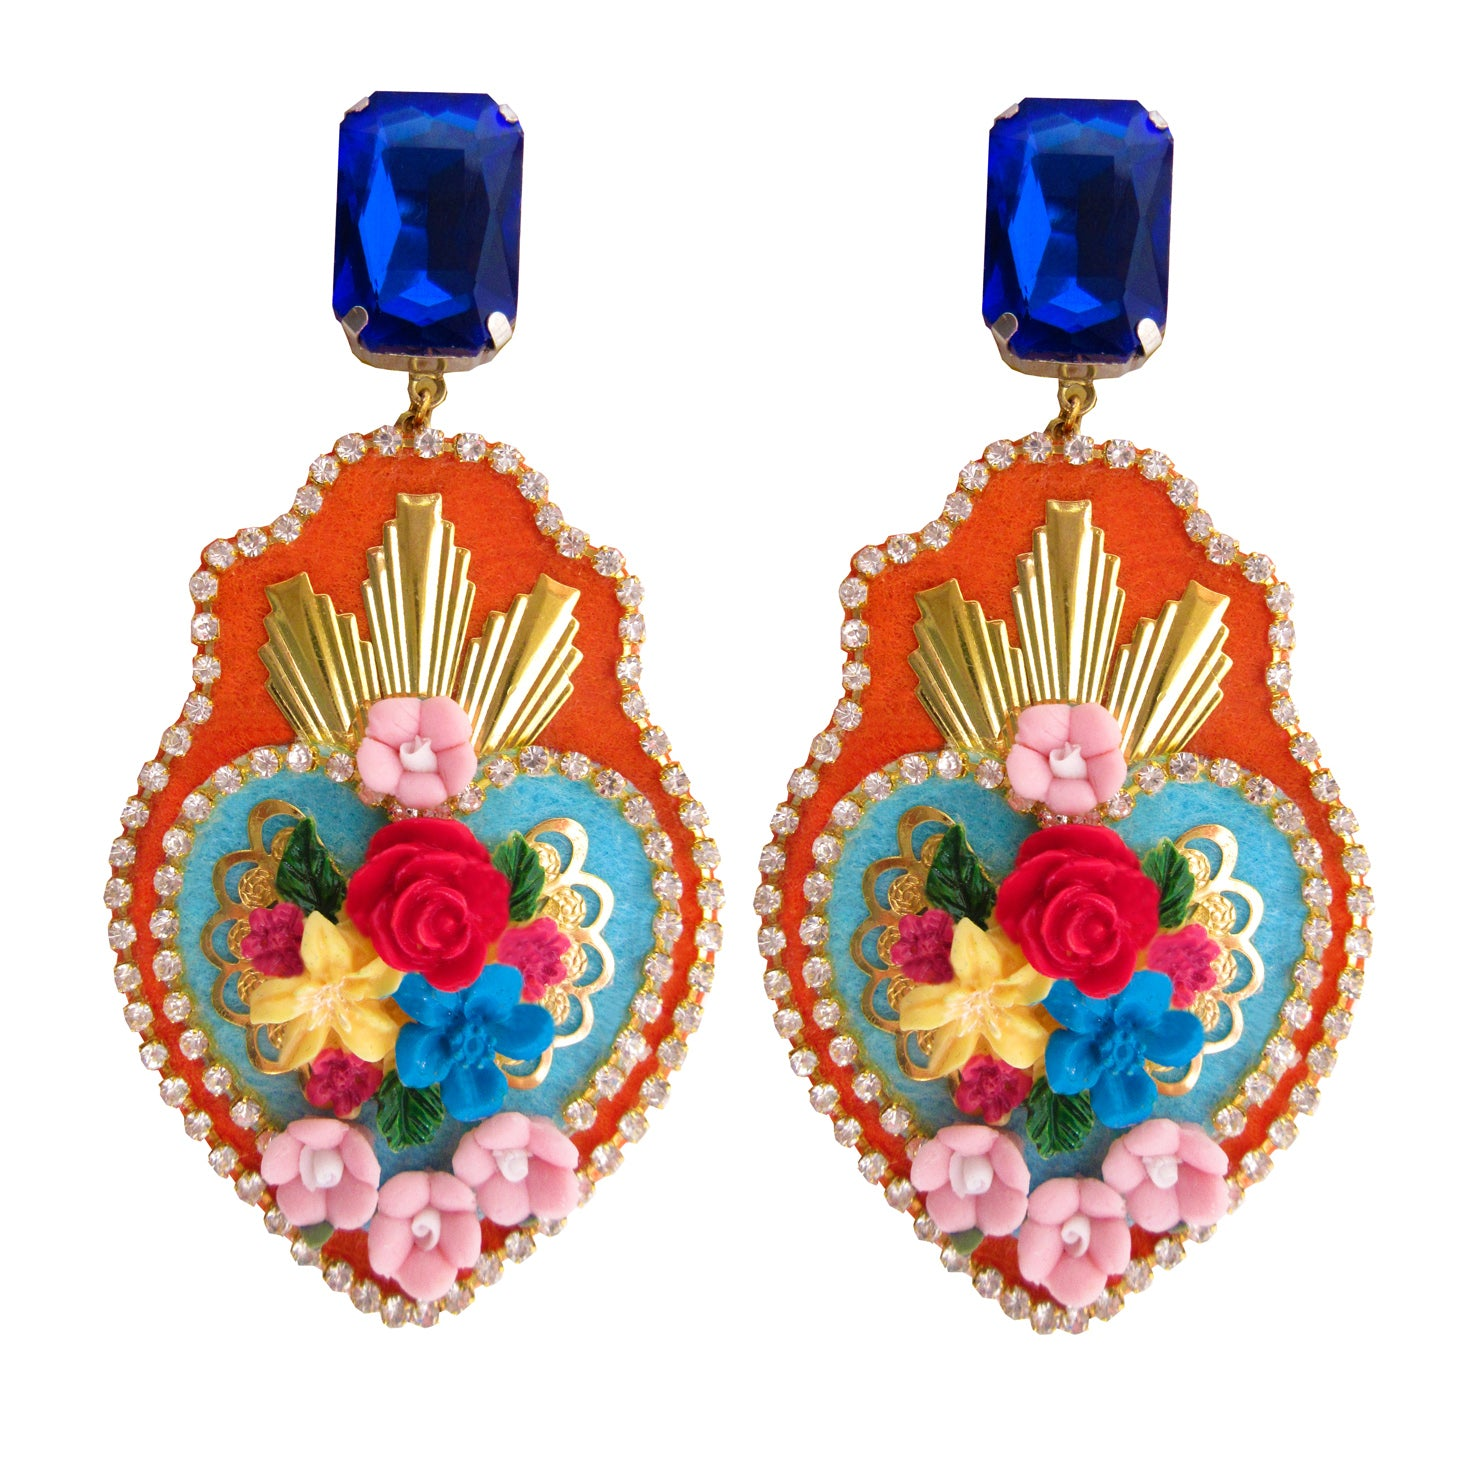 Mouchkine Jewelry floral couture handmade exvoto earrings.